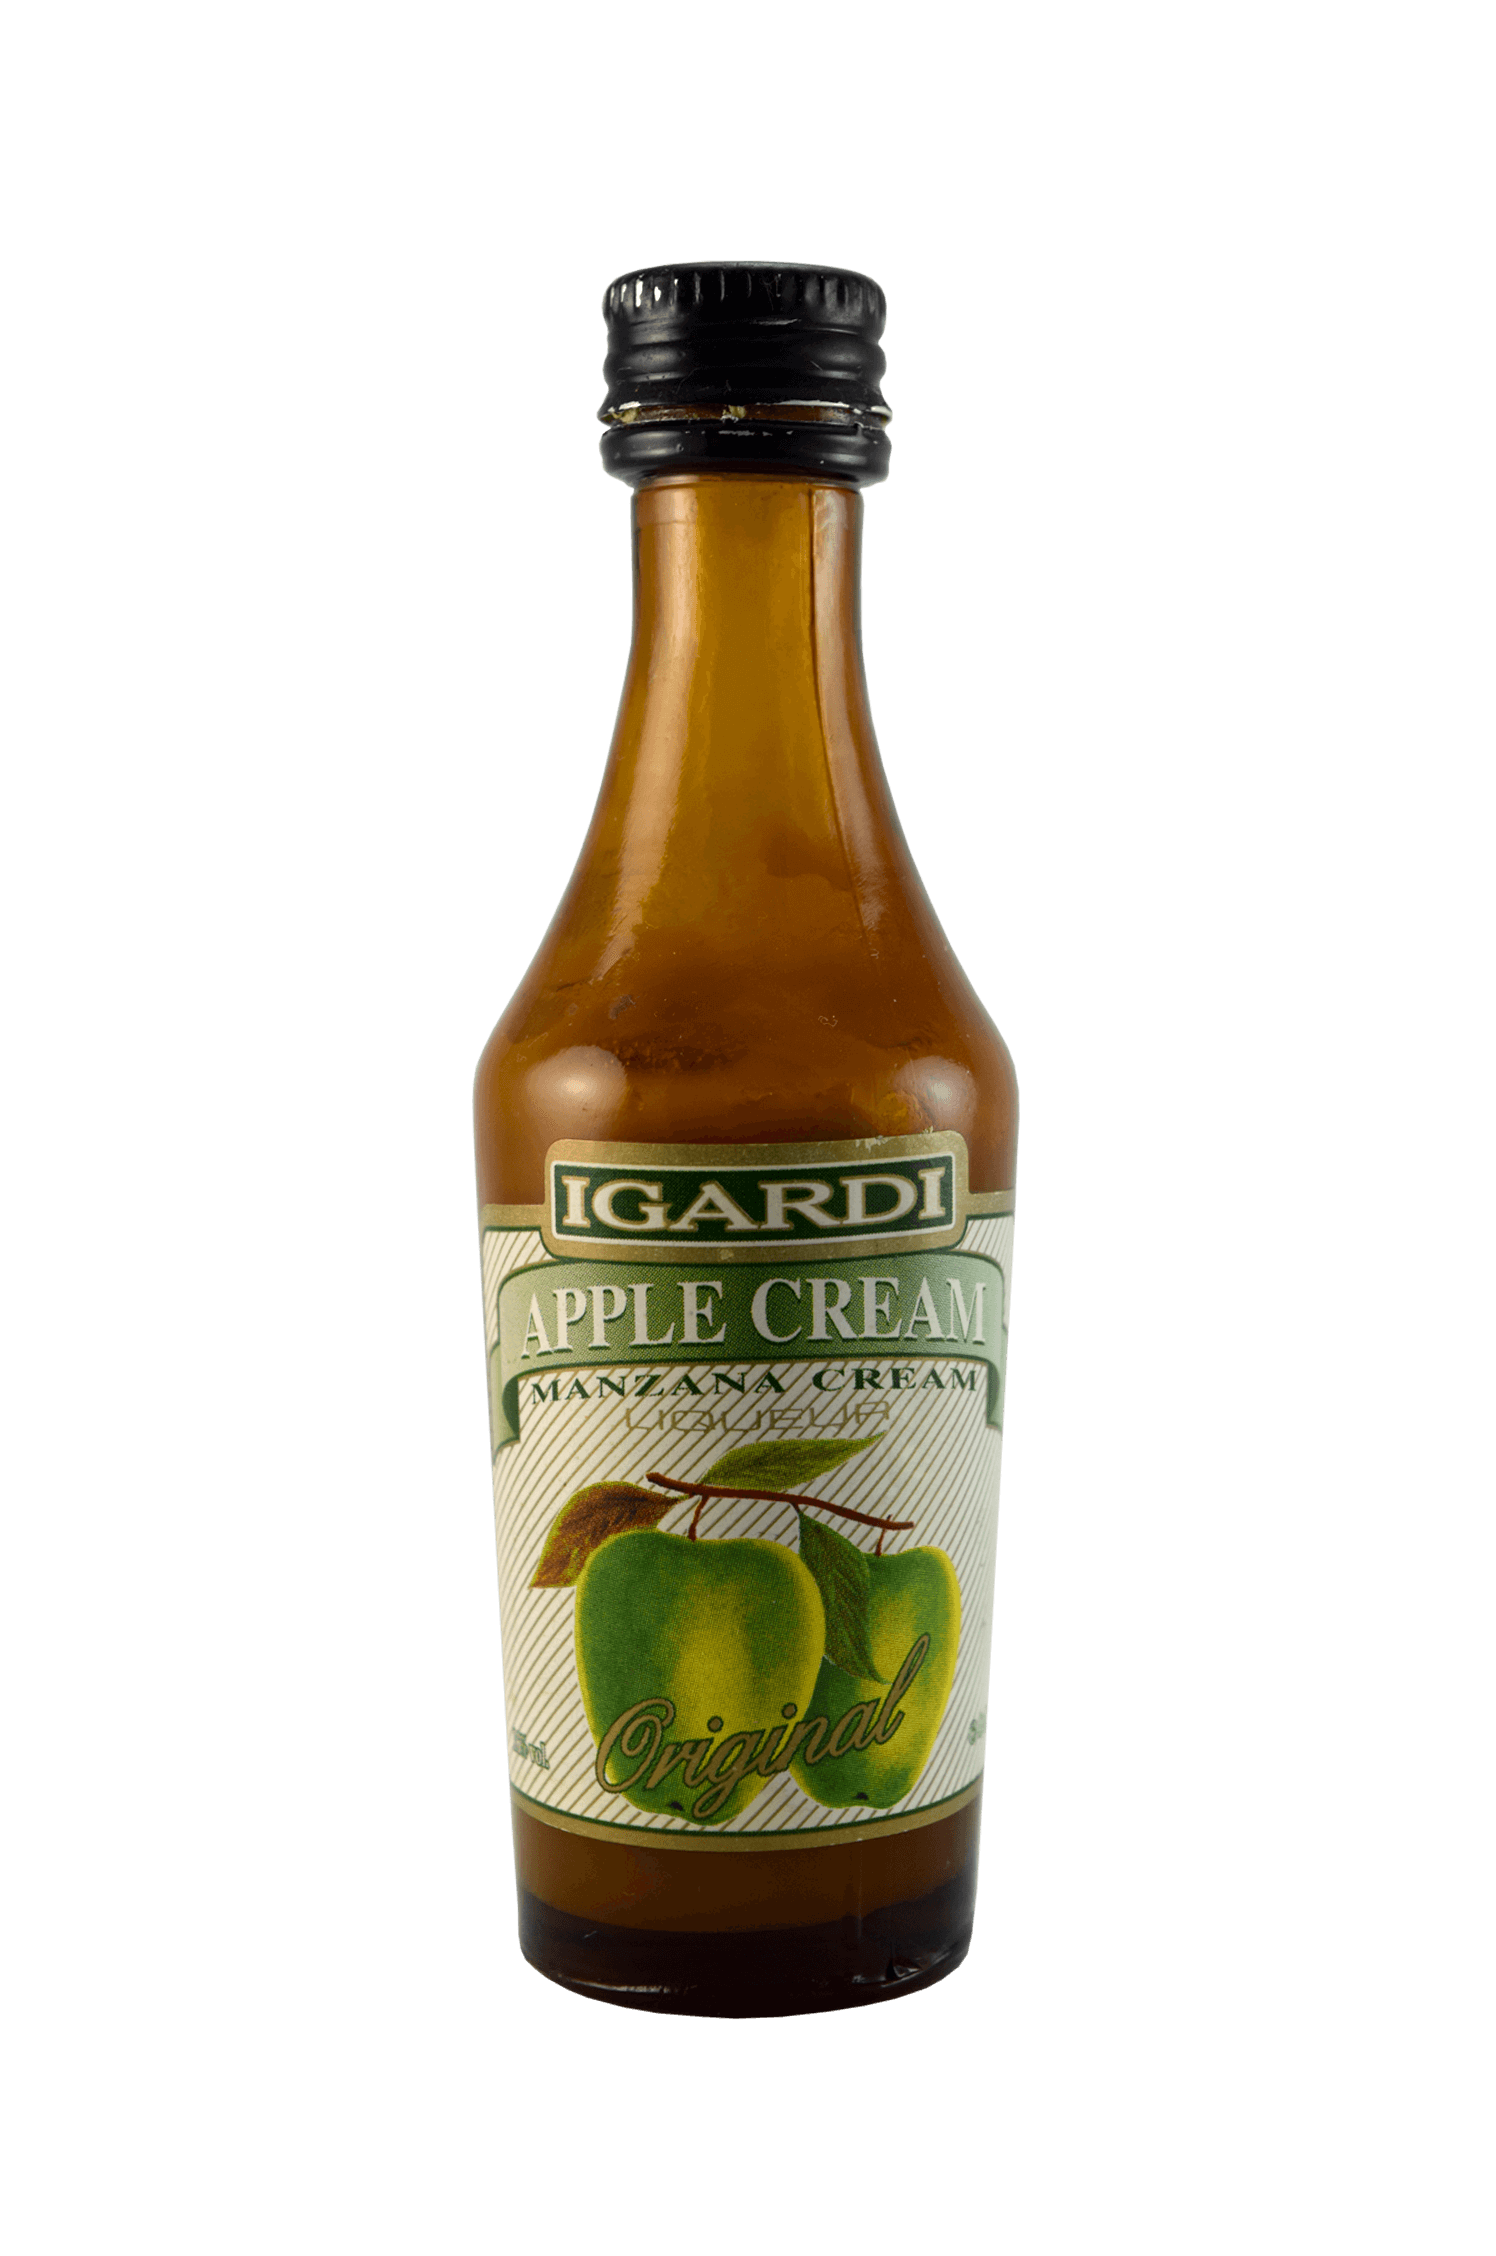 Igardi Apple Cream